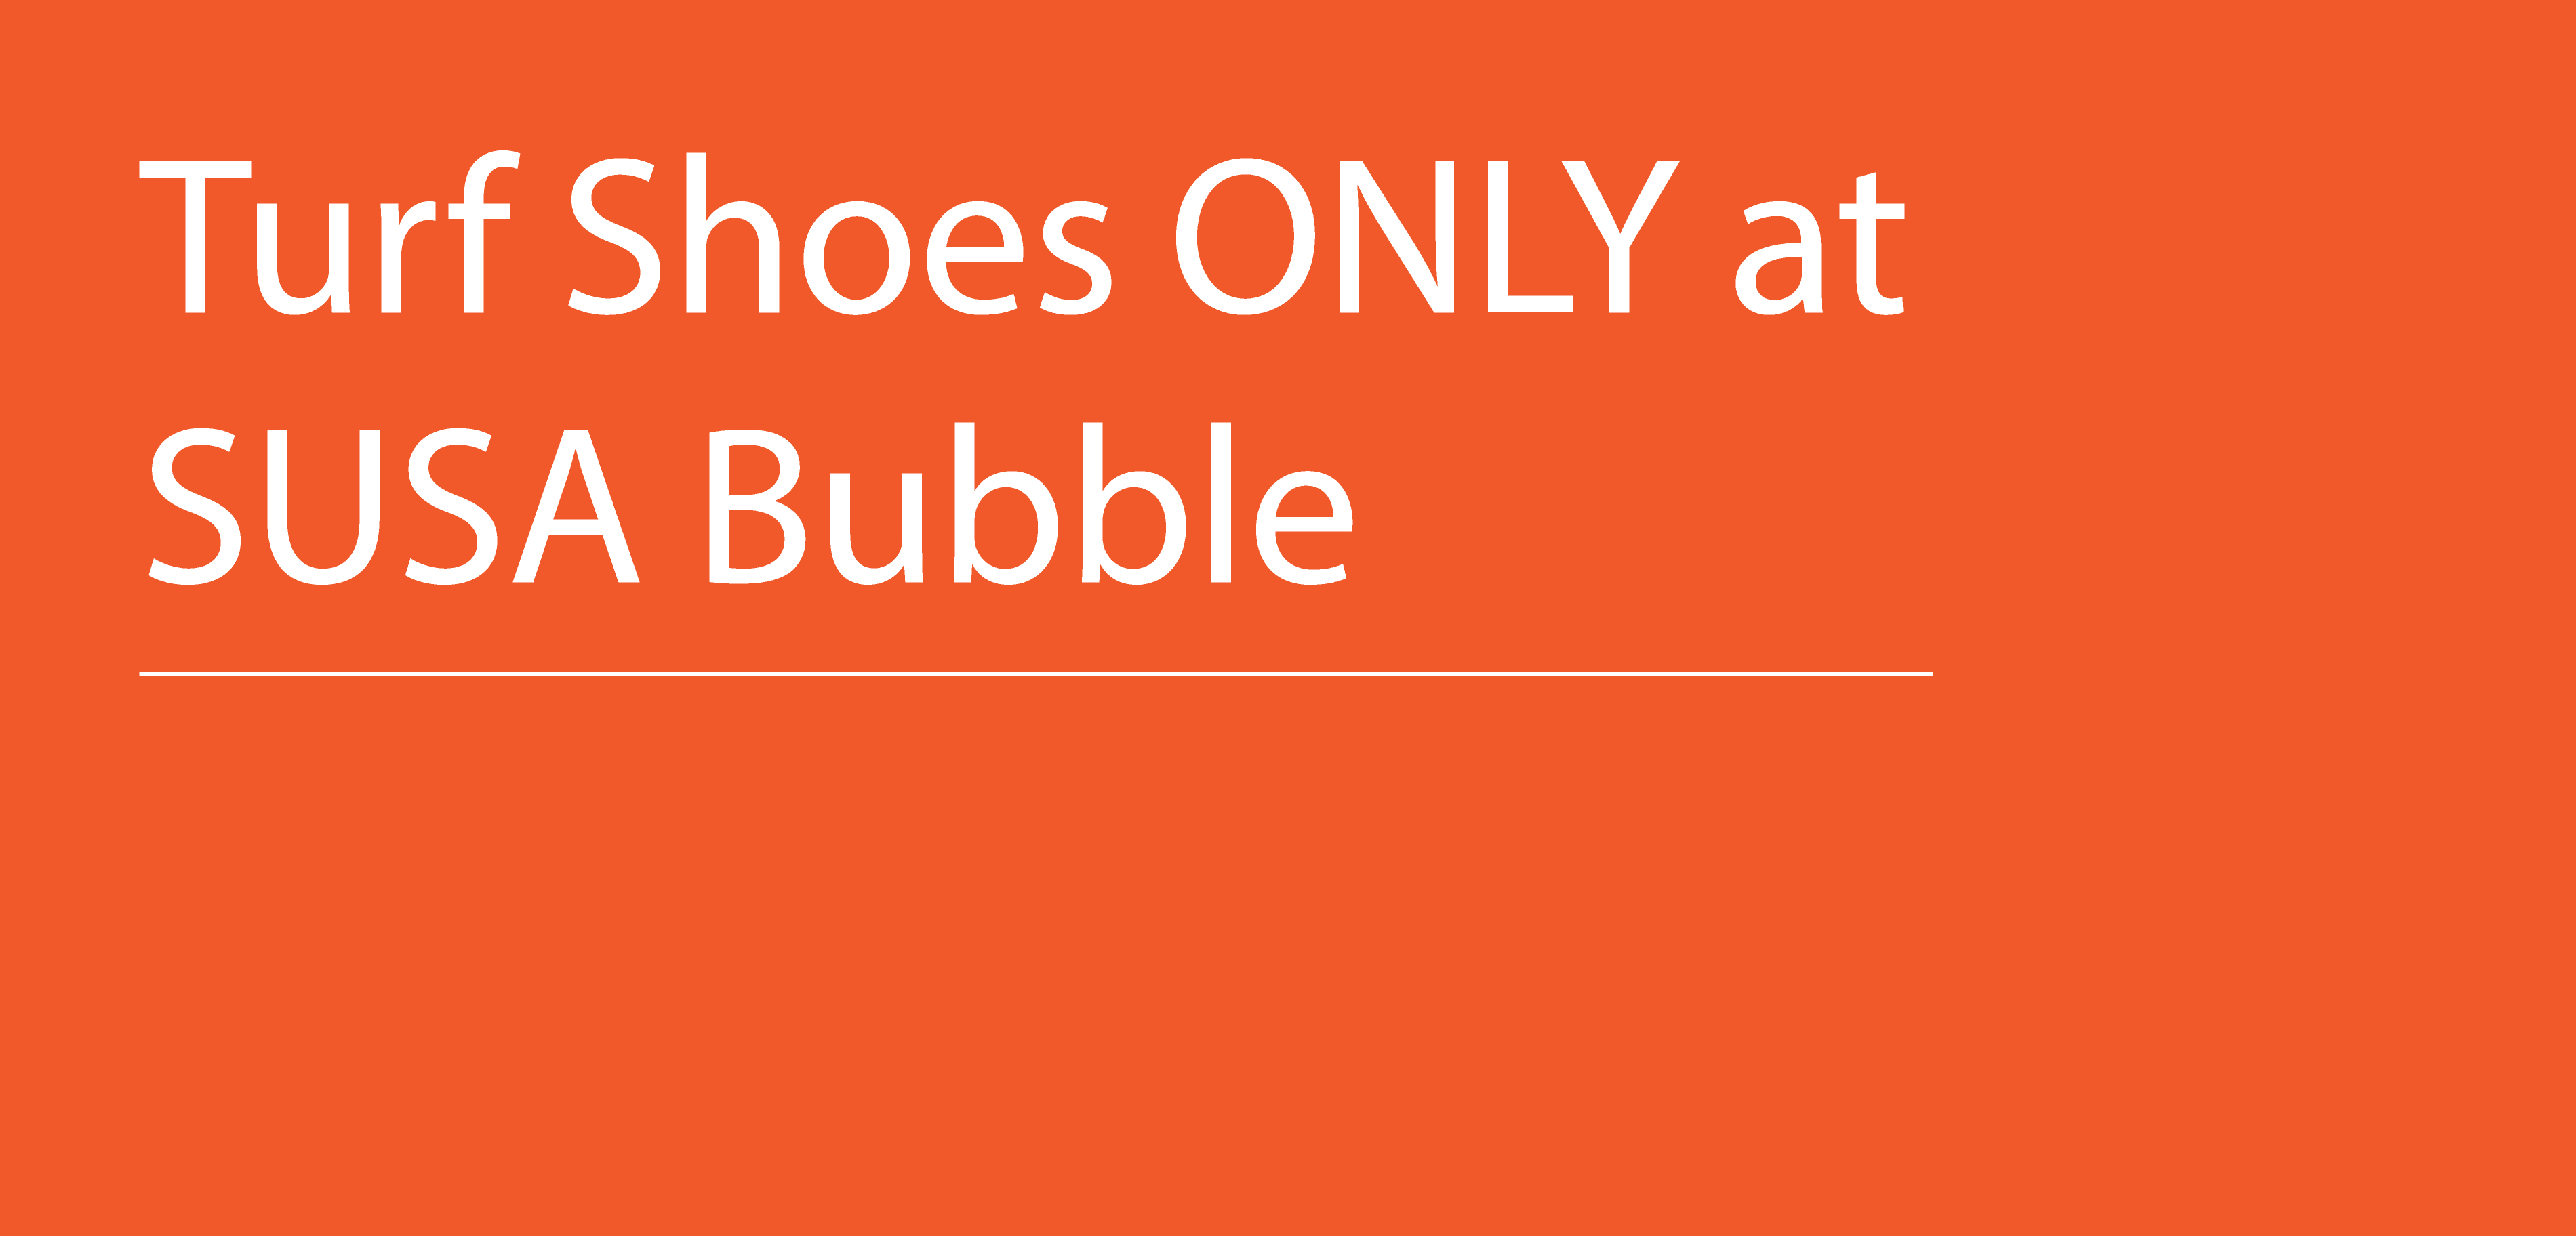 Turf Shoes ONLY at SUSA Bubble